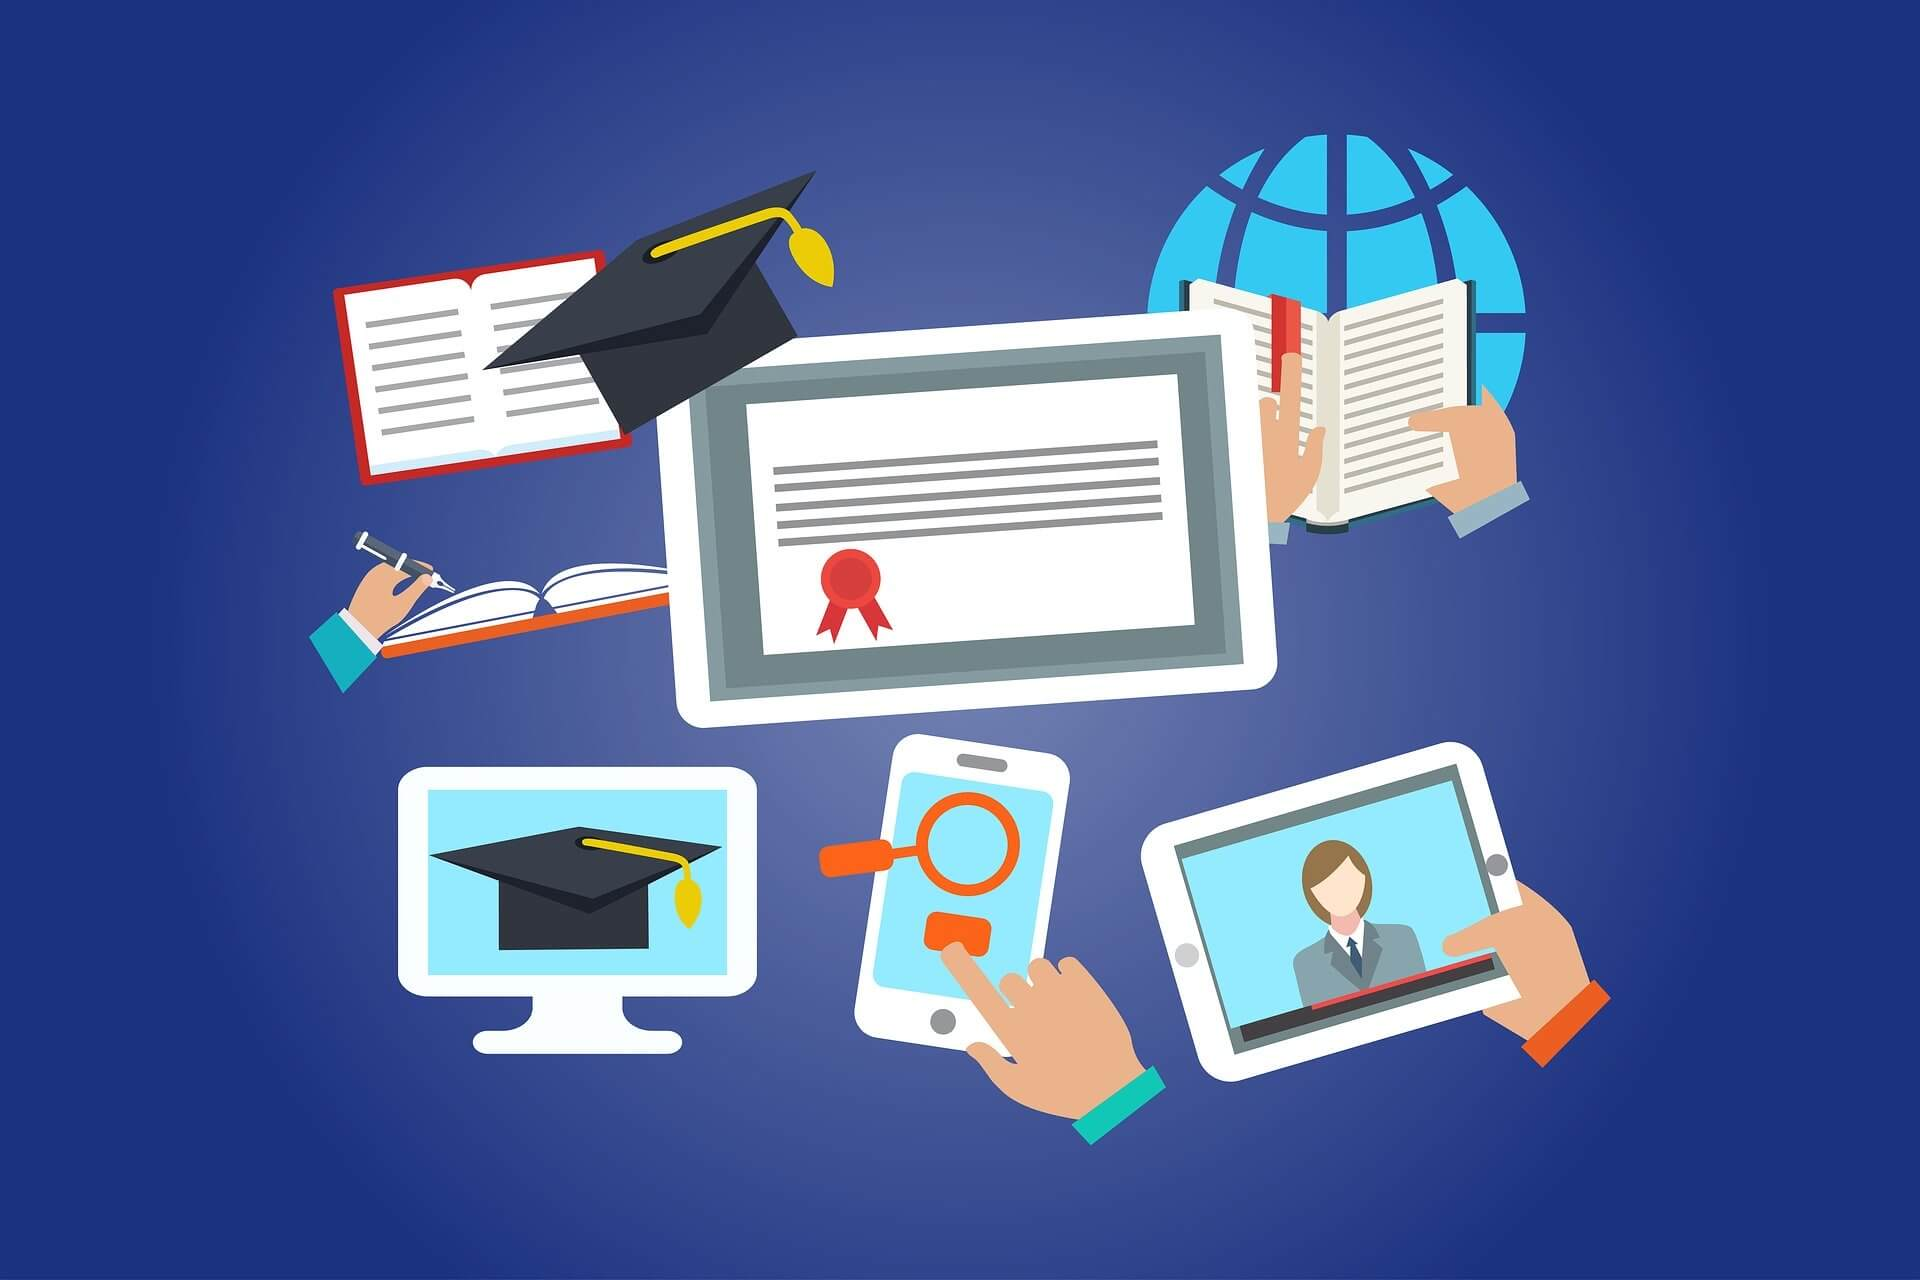 How To Access UPSA Virtual Online Learning Platform